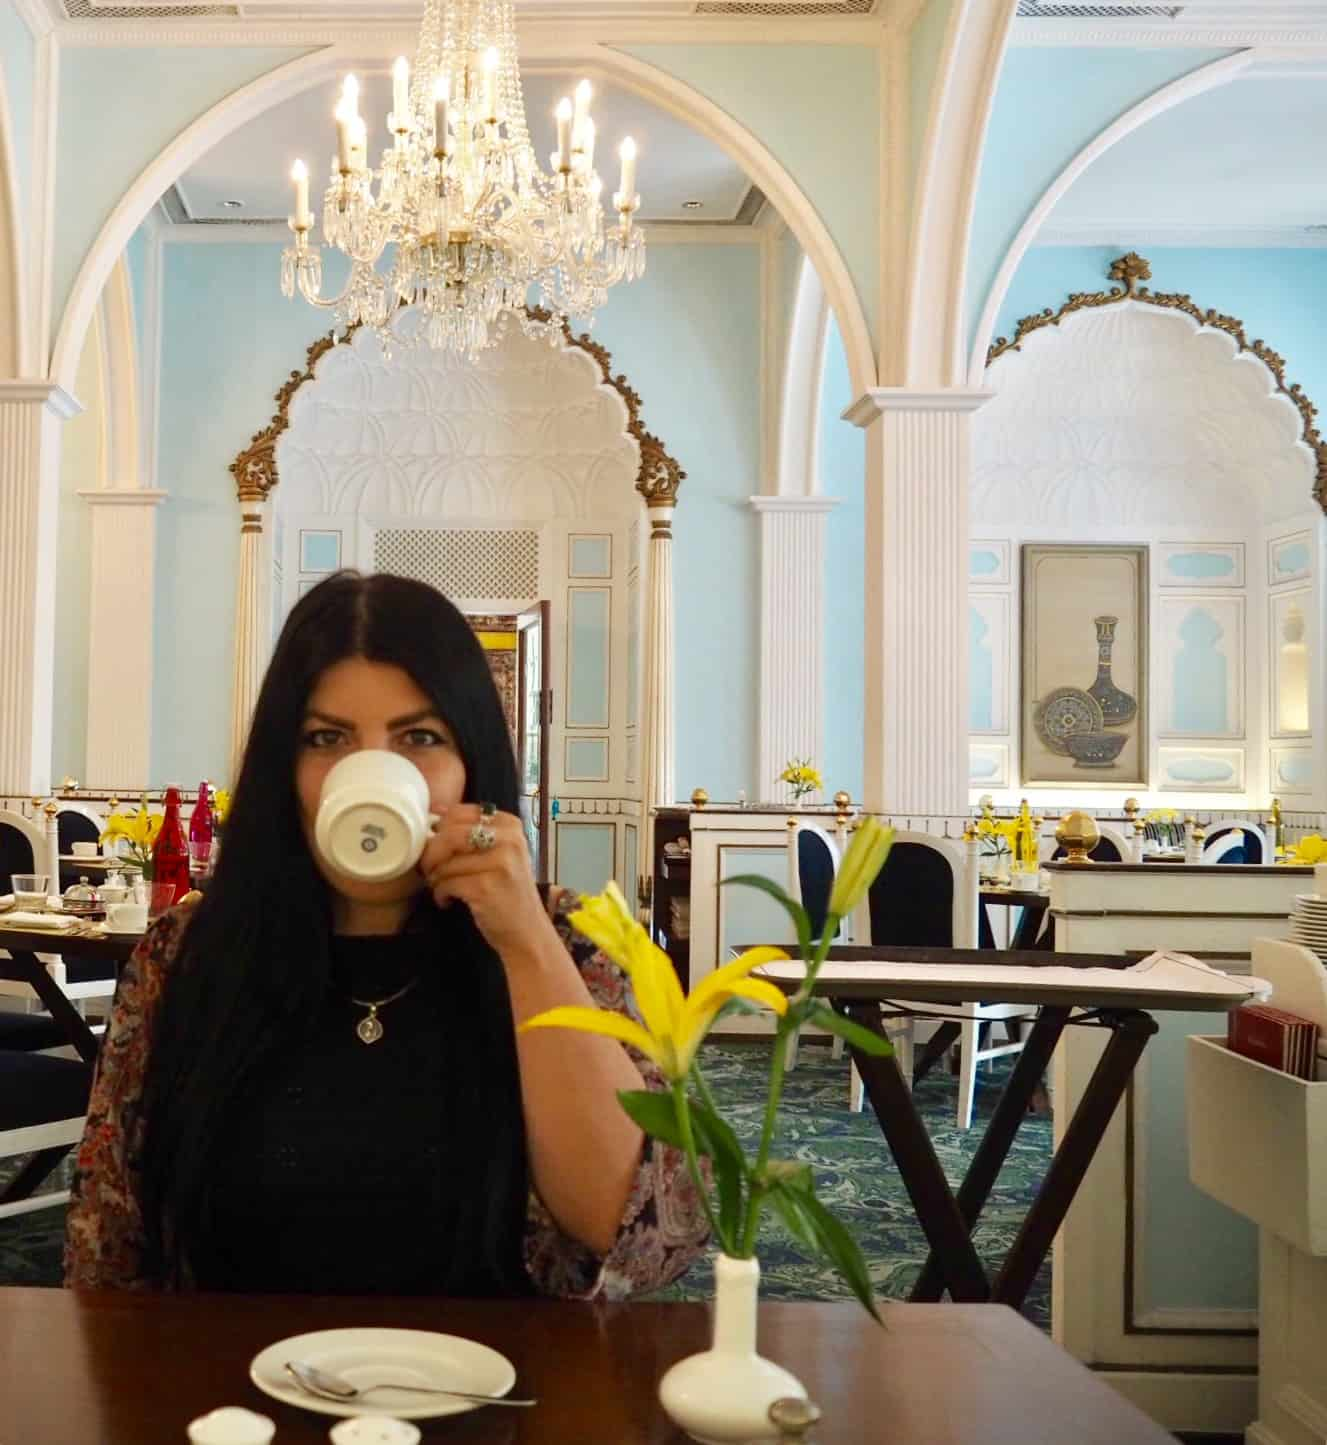 eating alone at restaurants while travelling solo